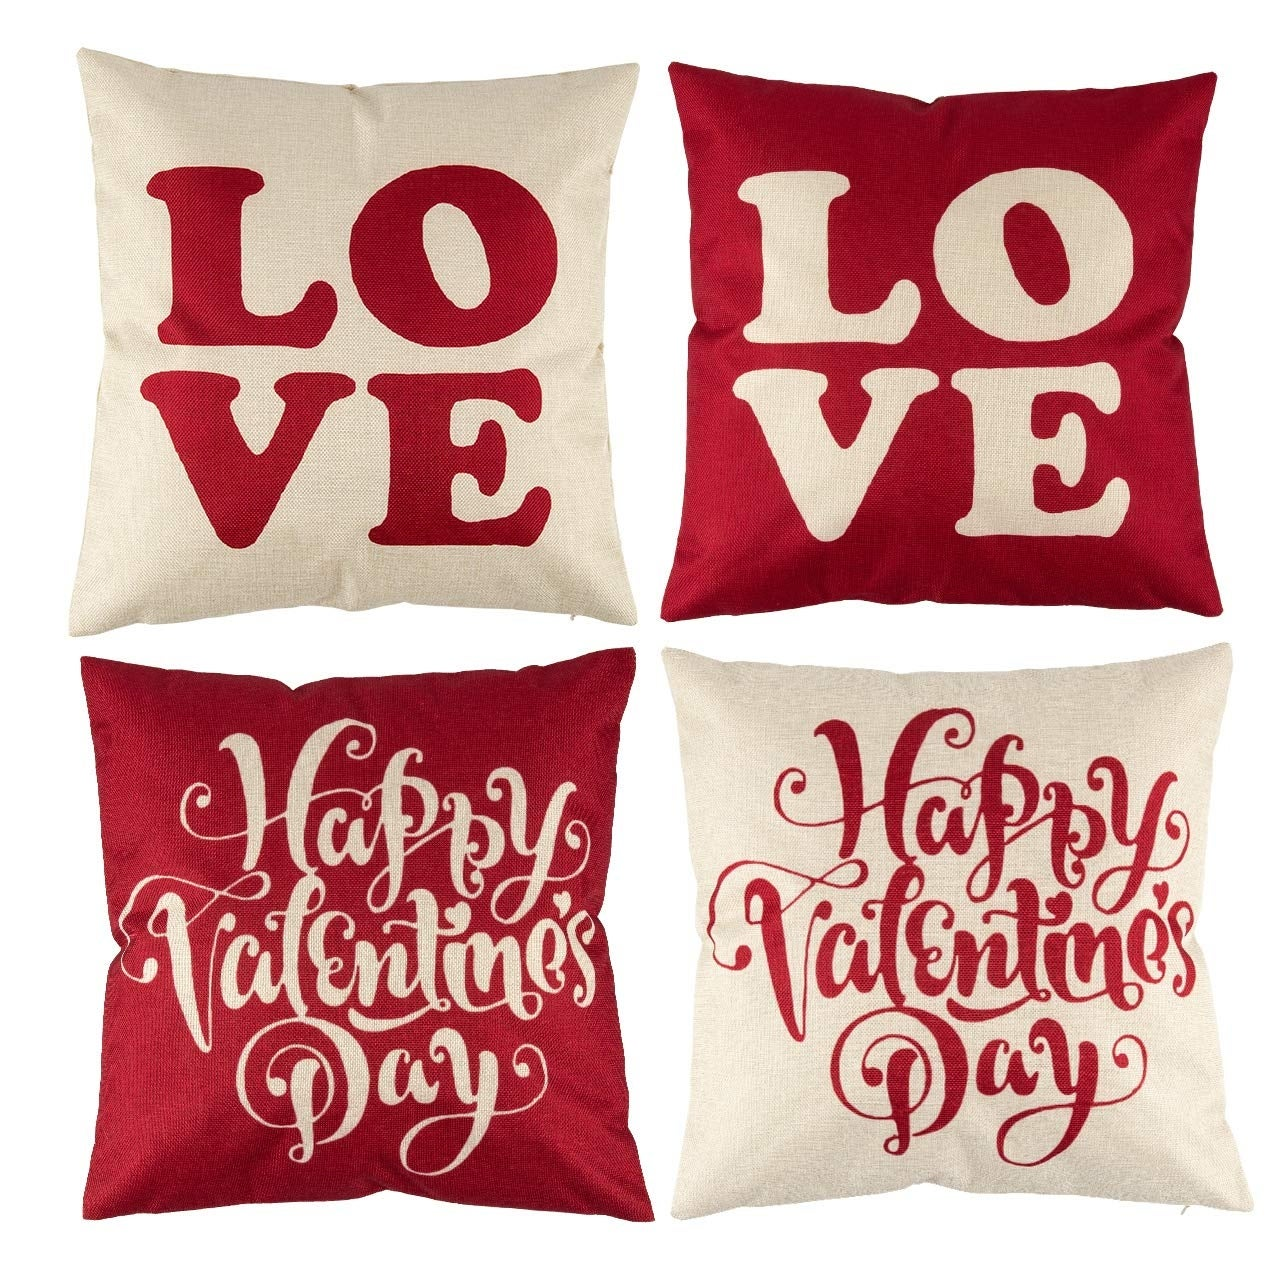 Happy Valentine S Day Throw Pillow Covers Overstock 26880802